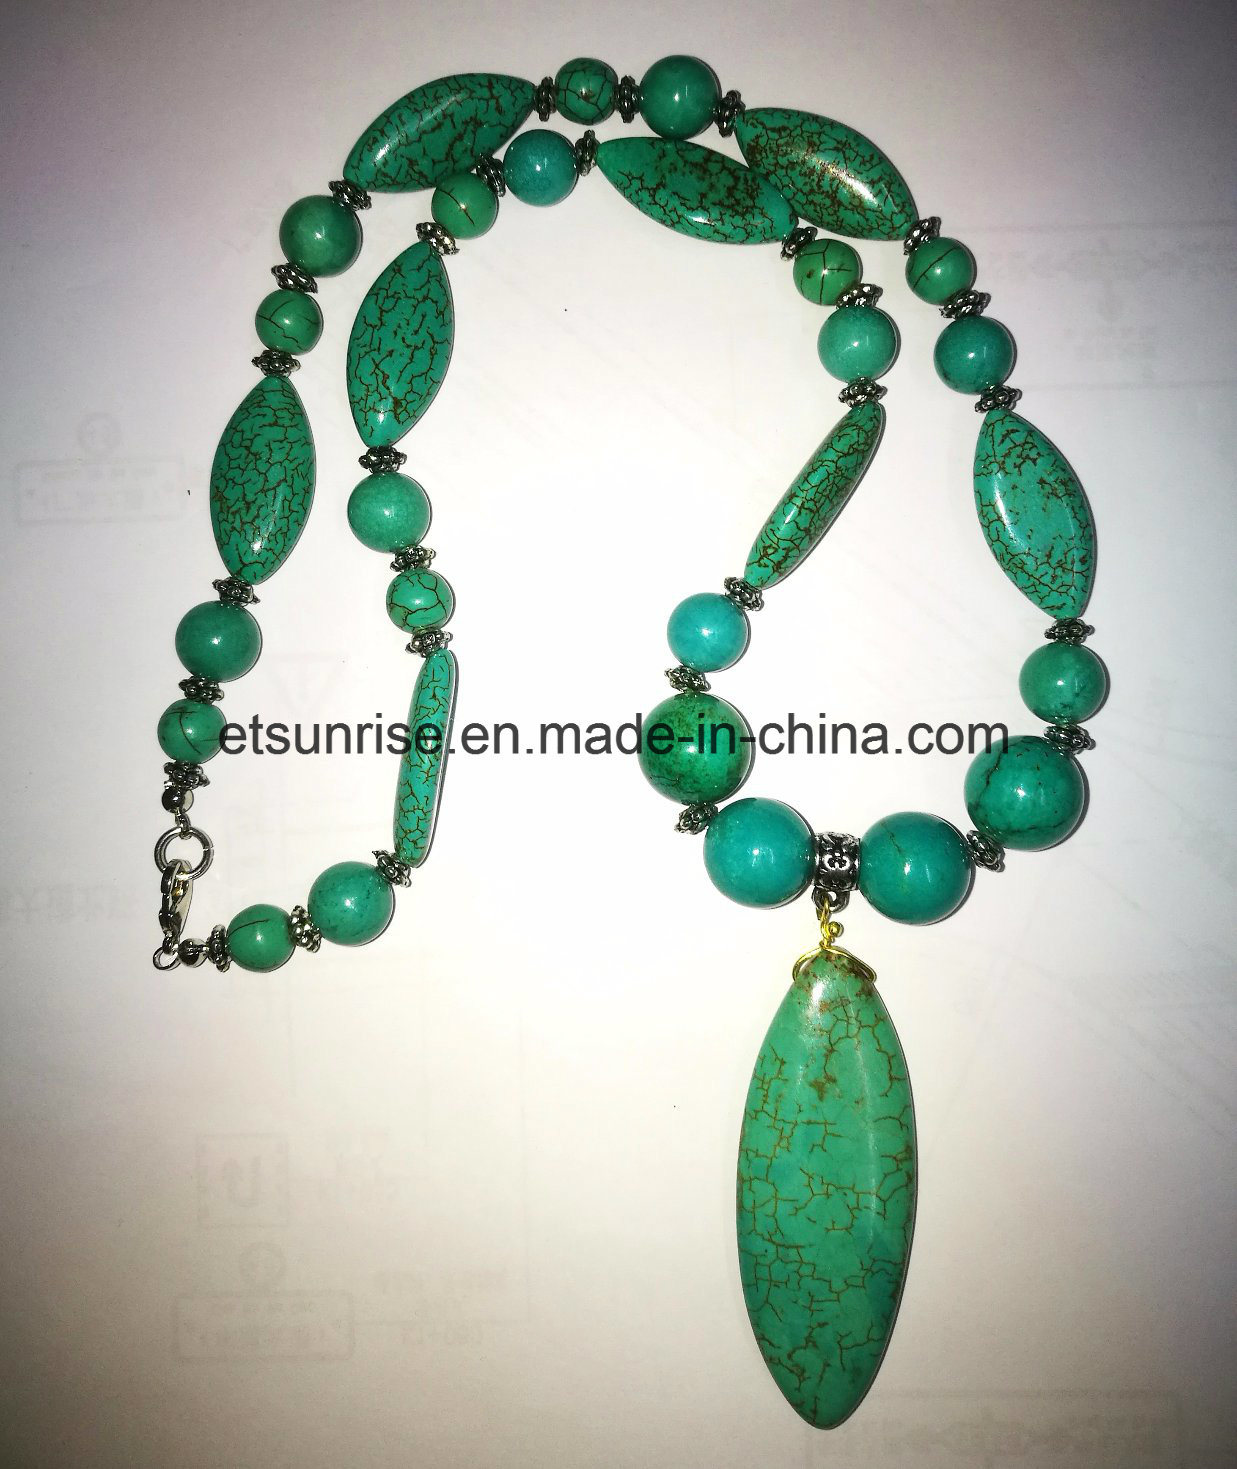 Fashion Semi Precious Stone Natural Turquoise Crystal Beaded Necklace Jewelry